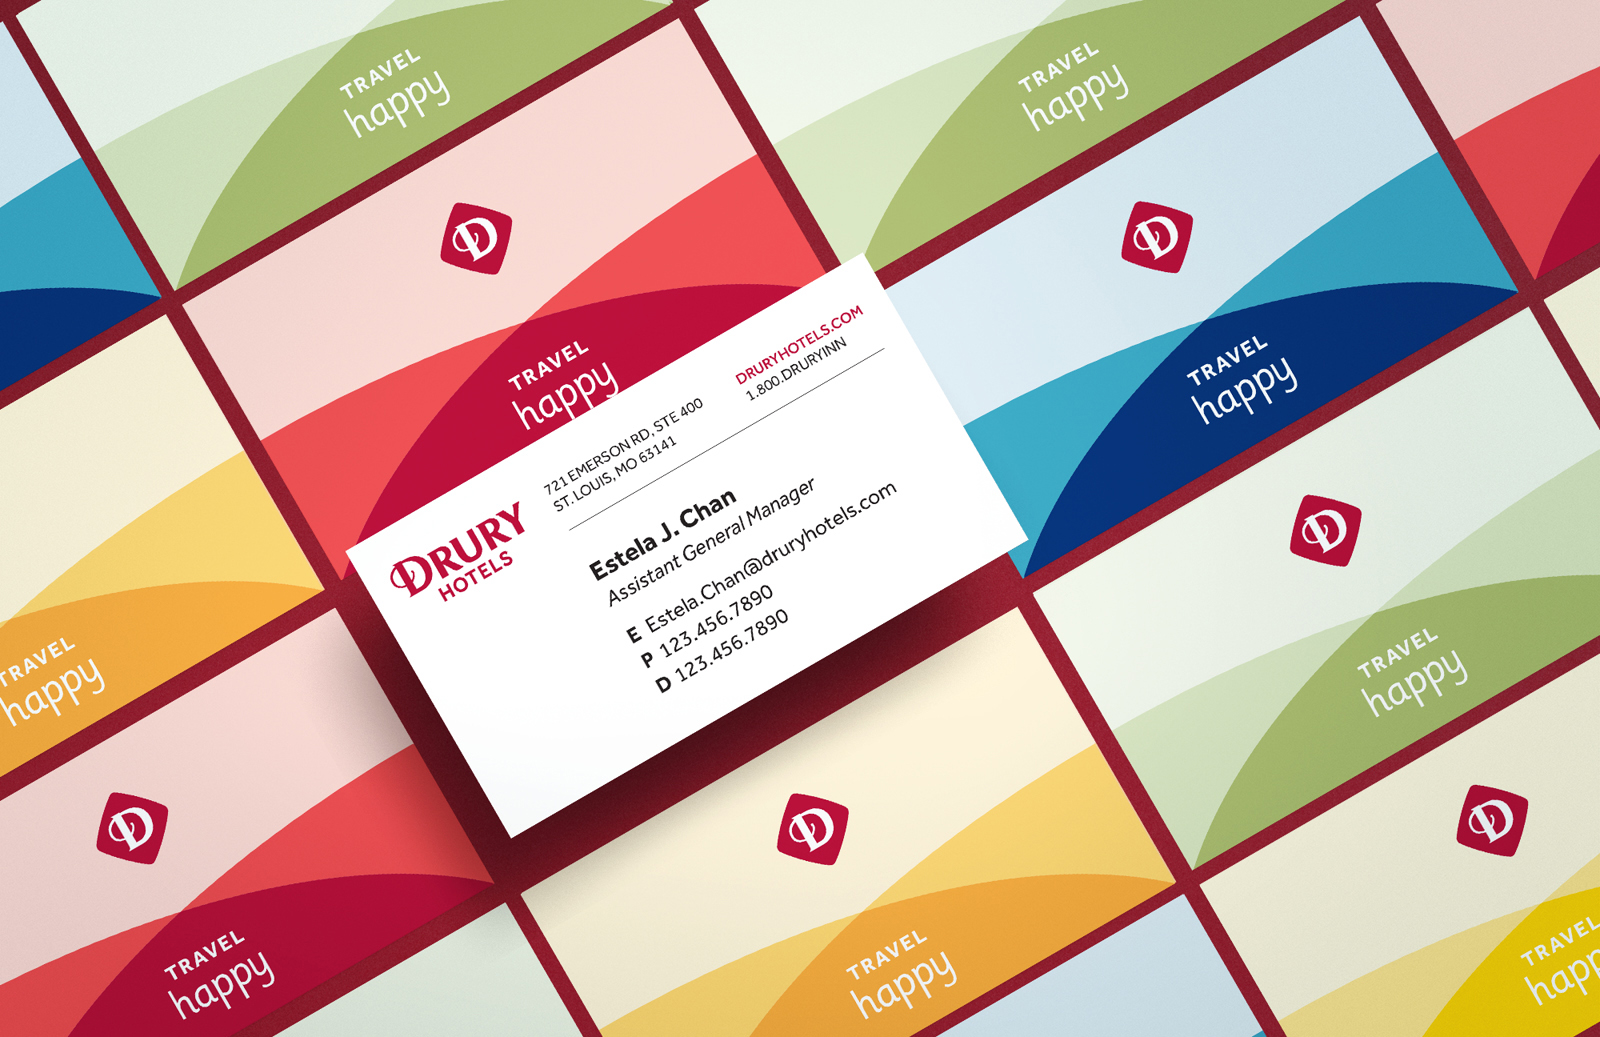 Drury Hotels Business Card Mockup